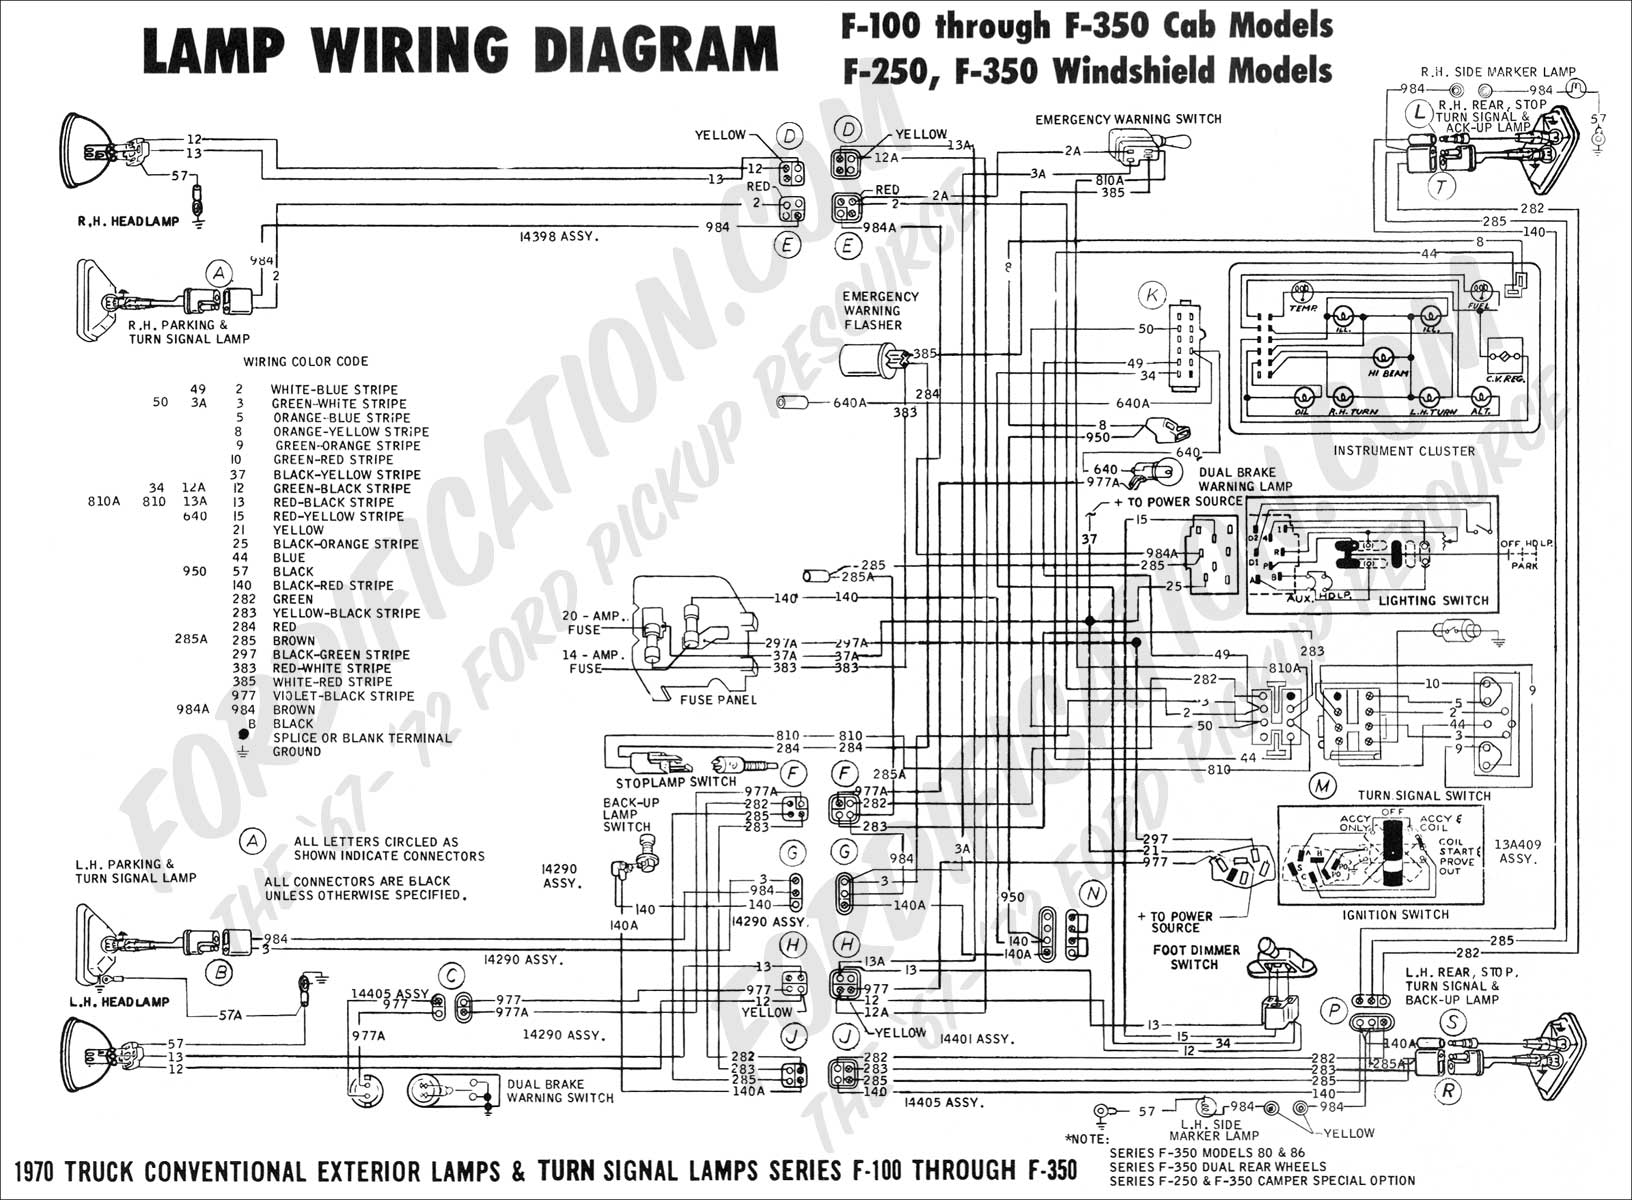 1994 Ford Tempo Fuse Box Diagram besides 1993 Ford Ranger 3 0 Spark Plug Wire Diagram likewise 1986 Ford F 150 Pictures C4470 likewise 2t2xj Hi 1986 Mustang Gt Few Months Ago together with Watch. on 1993 ford tempo engine diagram